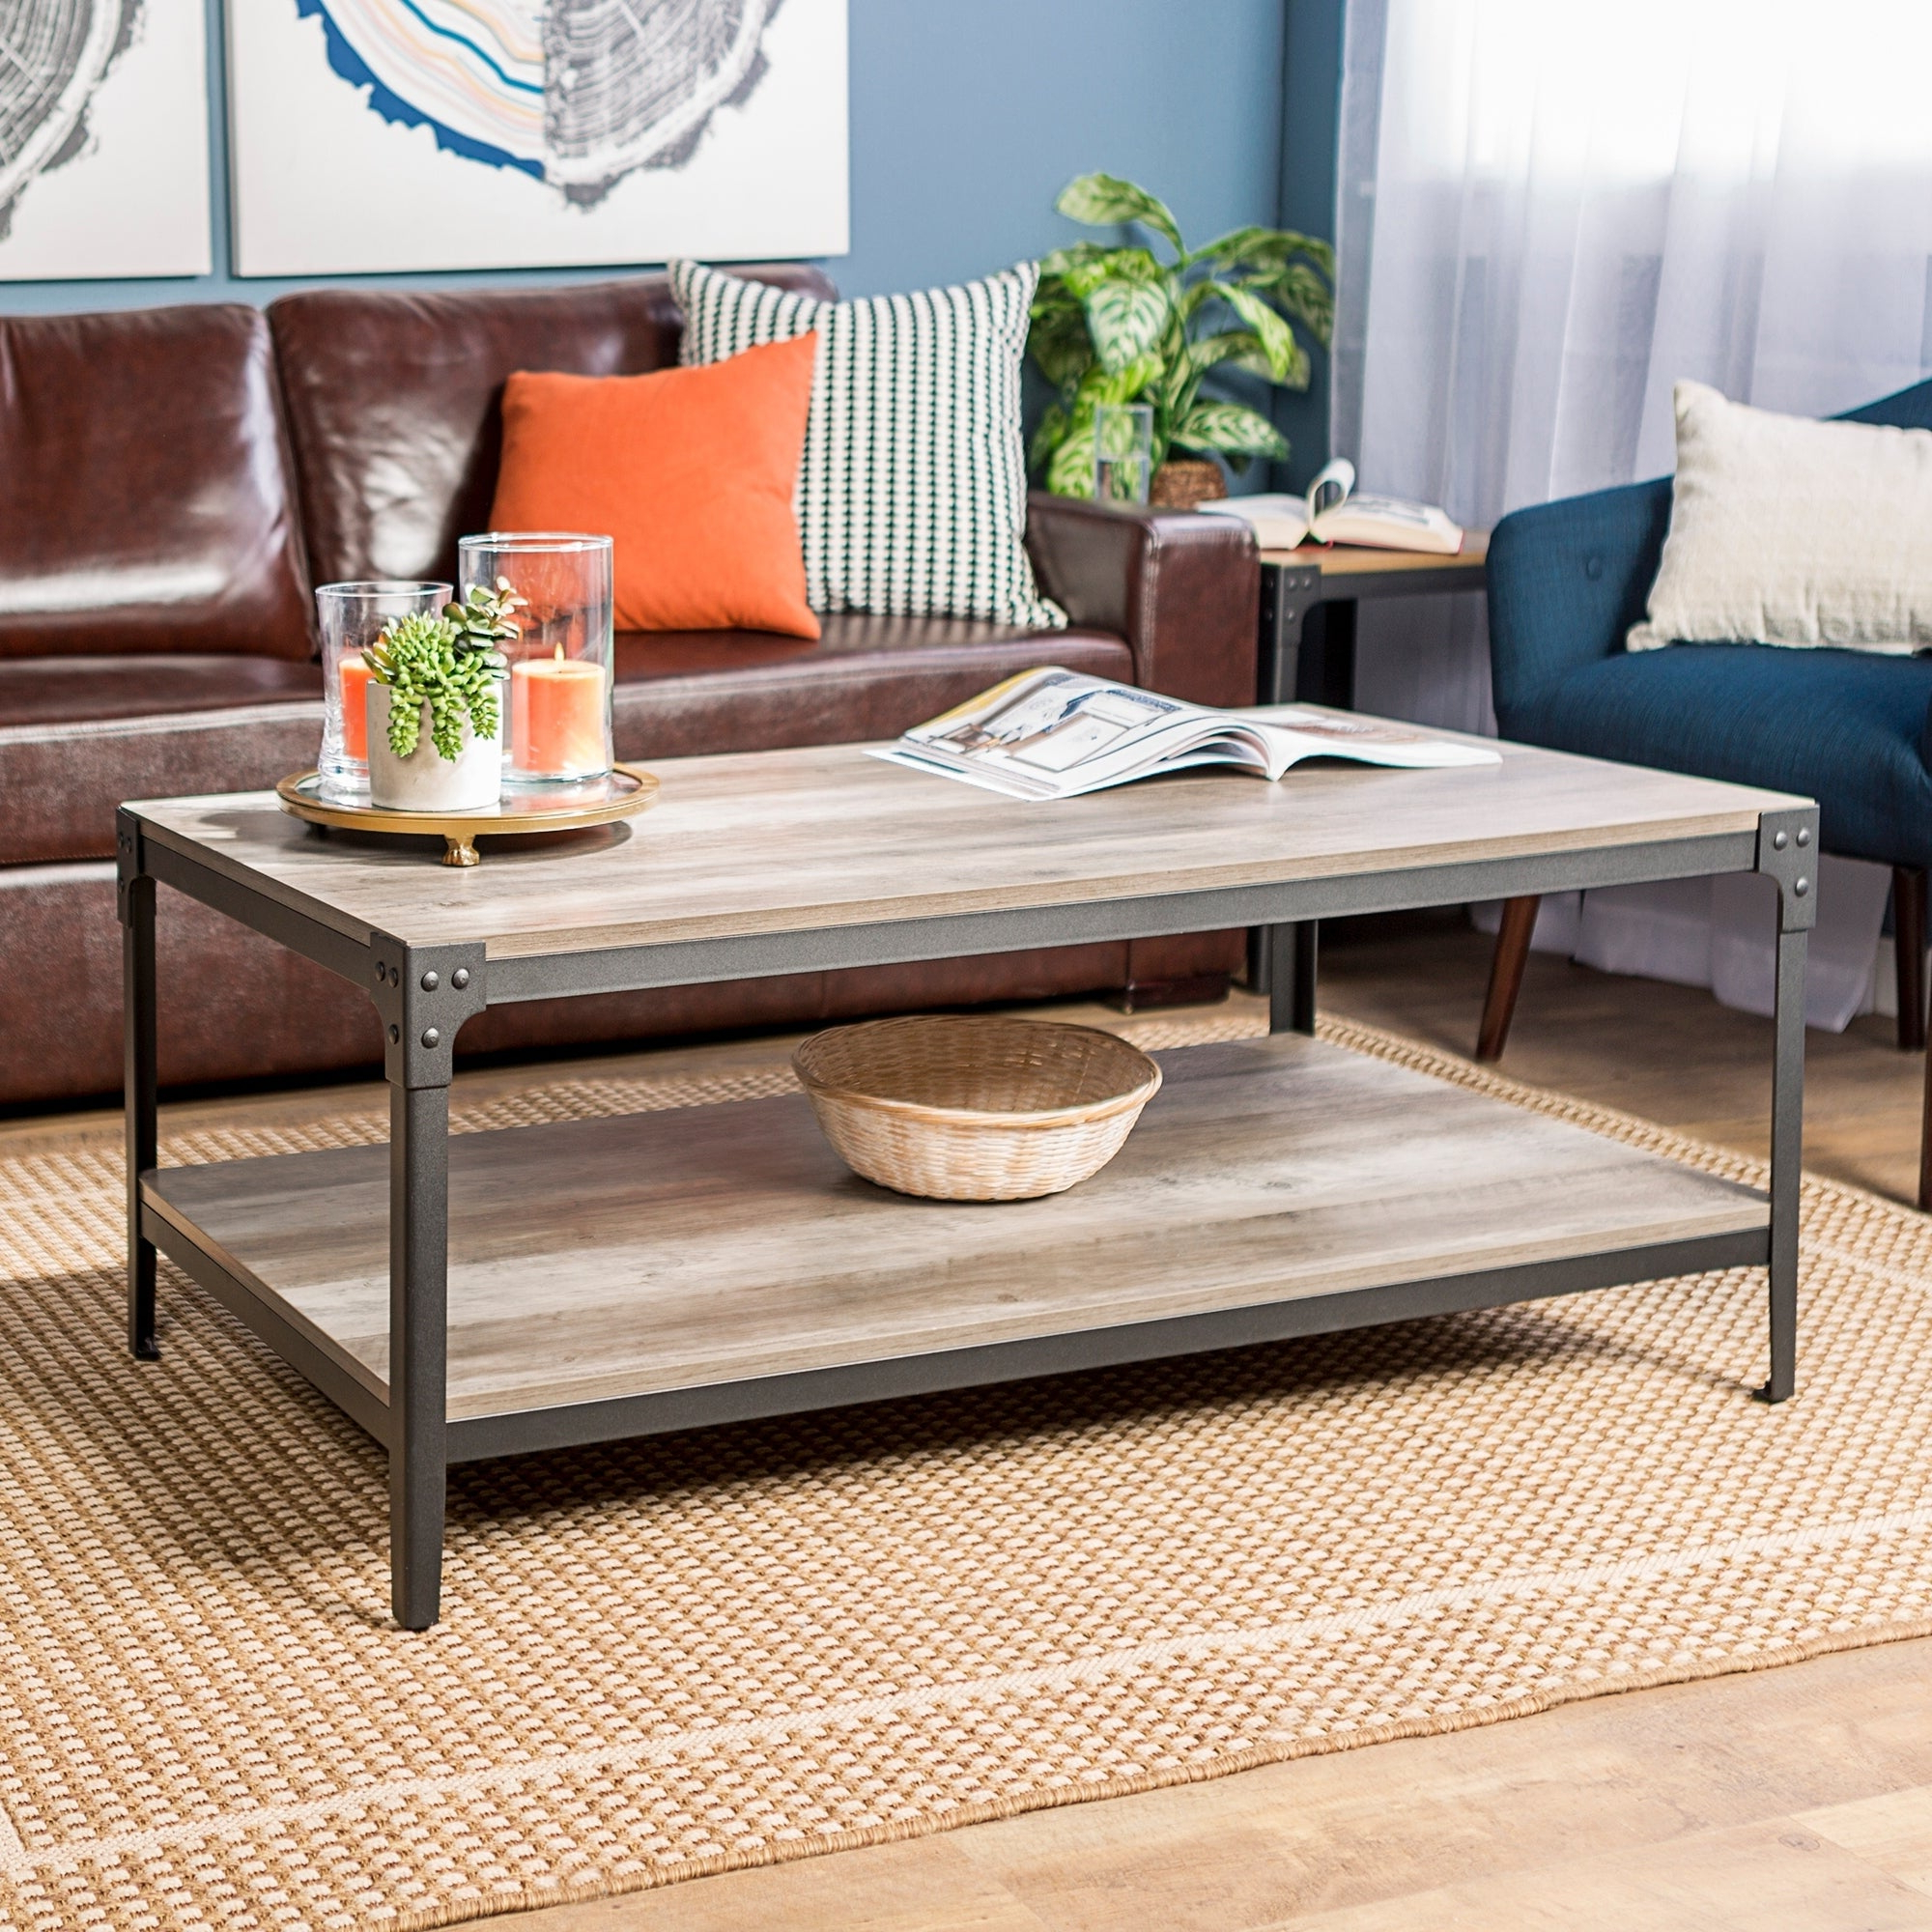 Carbon Loft Witten Angle Iron Coffee Table – 48 X 24 X 18H Pertaining To Current Carbon Loft Witten Angle Iron And Driftwood Coffee Tables (View 6 of 20)